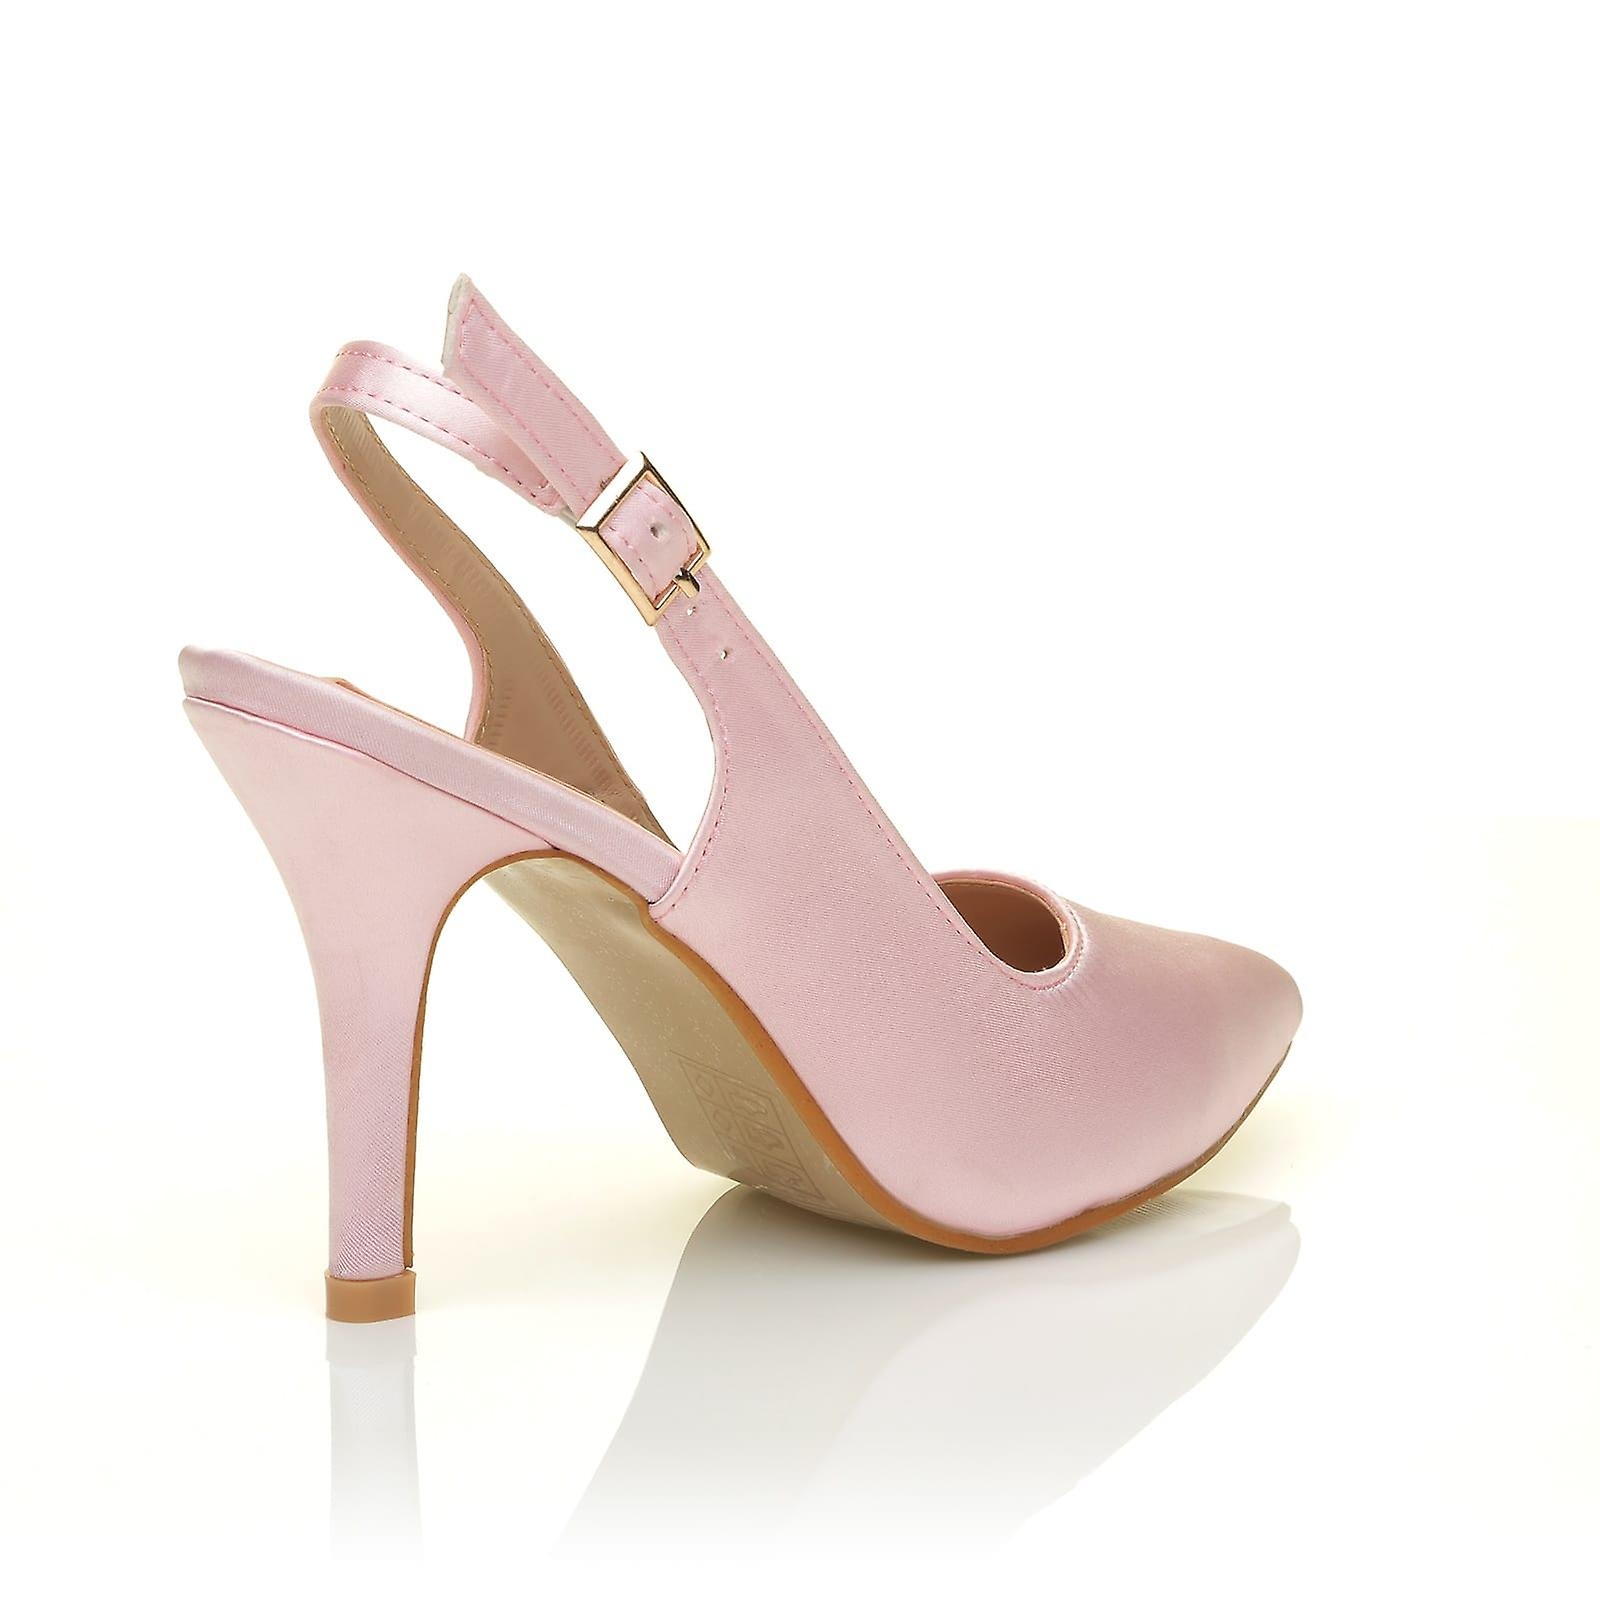 Stiletto Pink High Shoes Baby Bridal Slingback Heel Court FAITH Satin wF5tHqTH